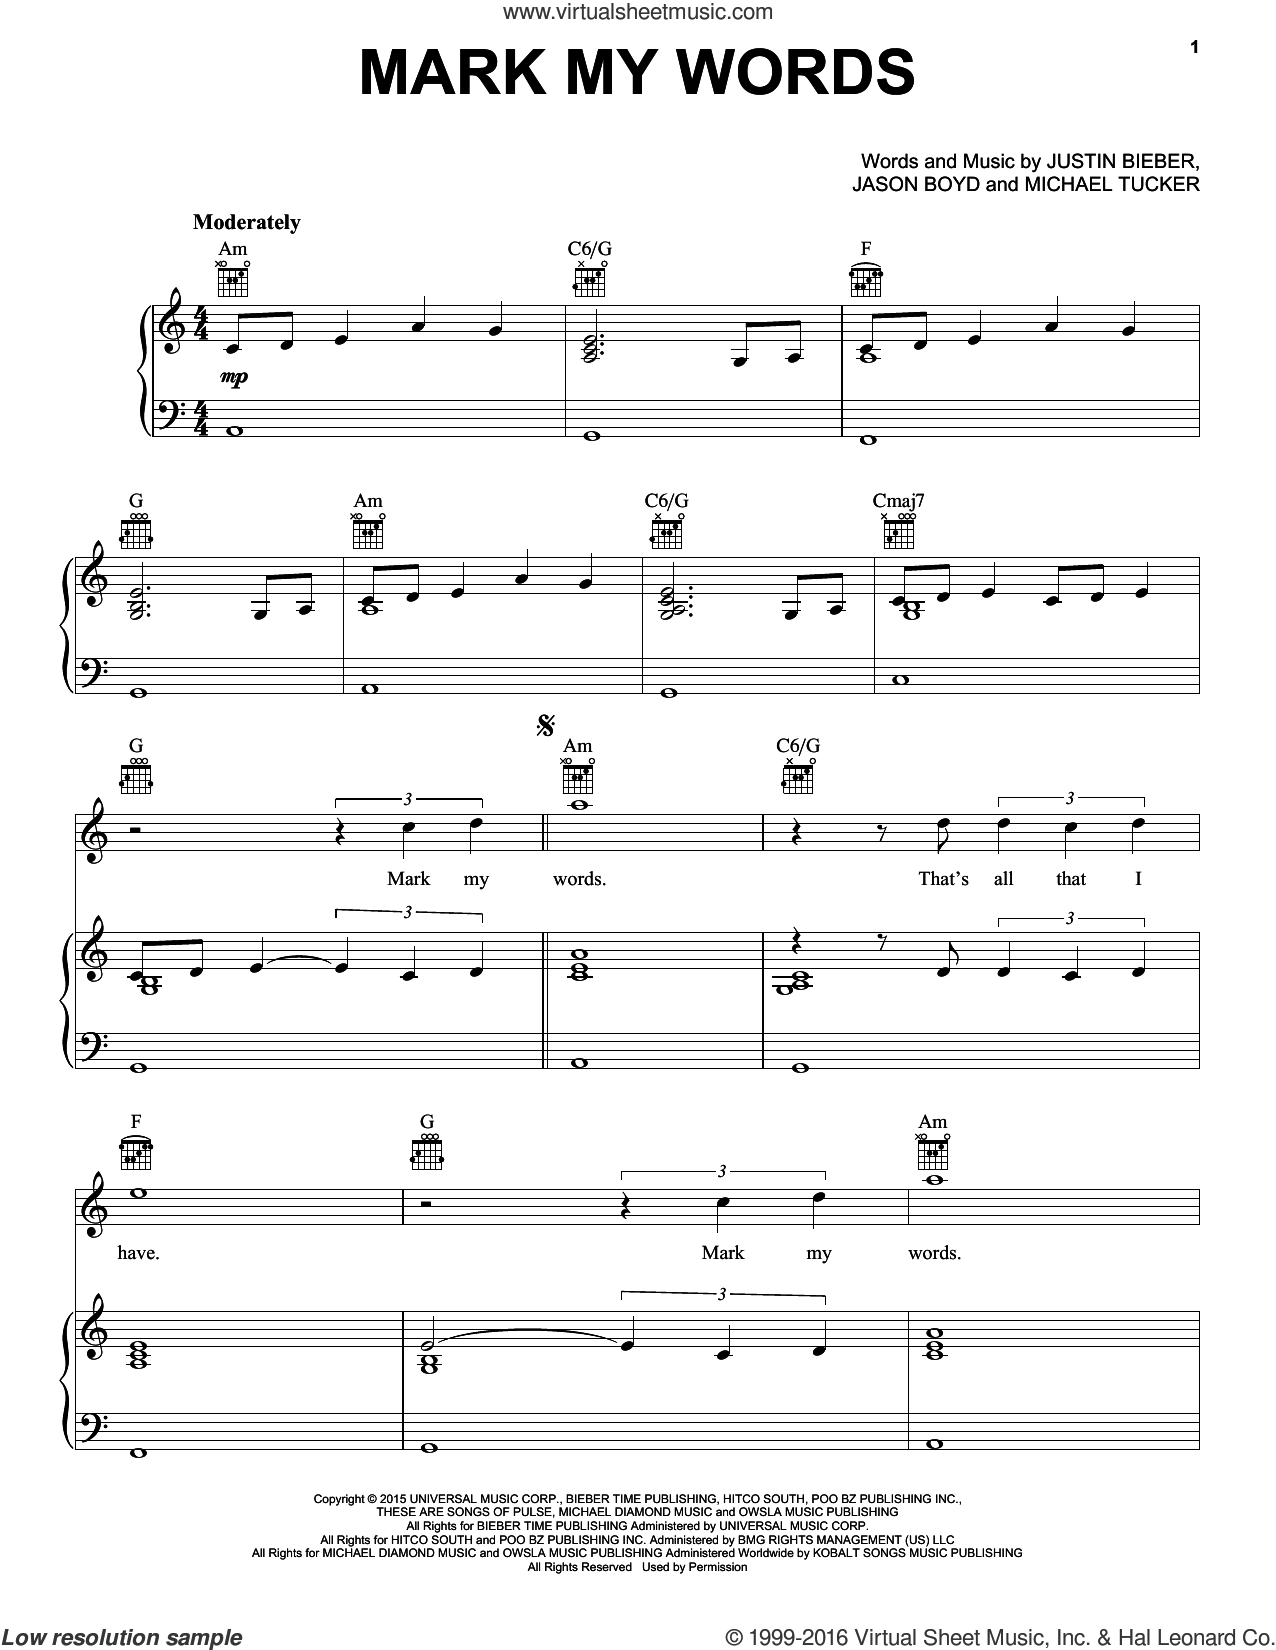 Mark My Words sheet music for voice, piano or guitar by Justin Bieber, Jason Boyd and Michael Tucker, intermediate skill level